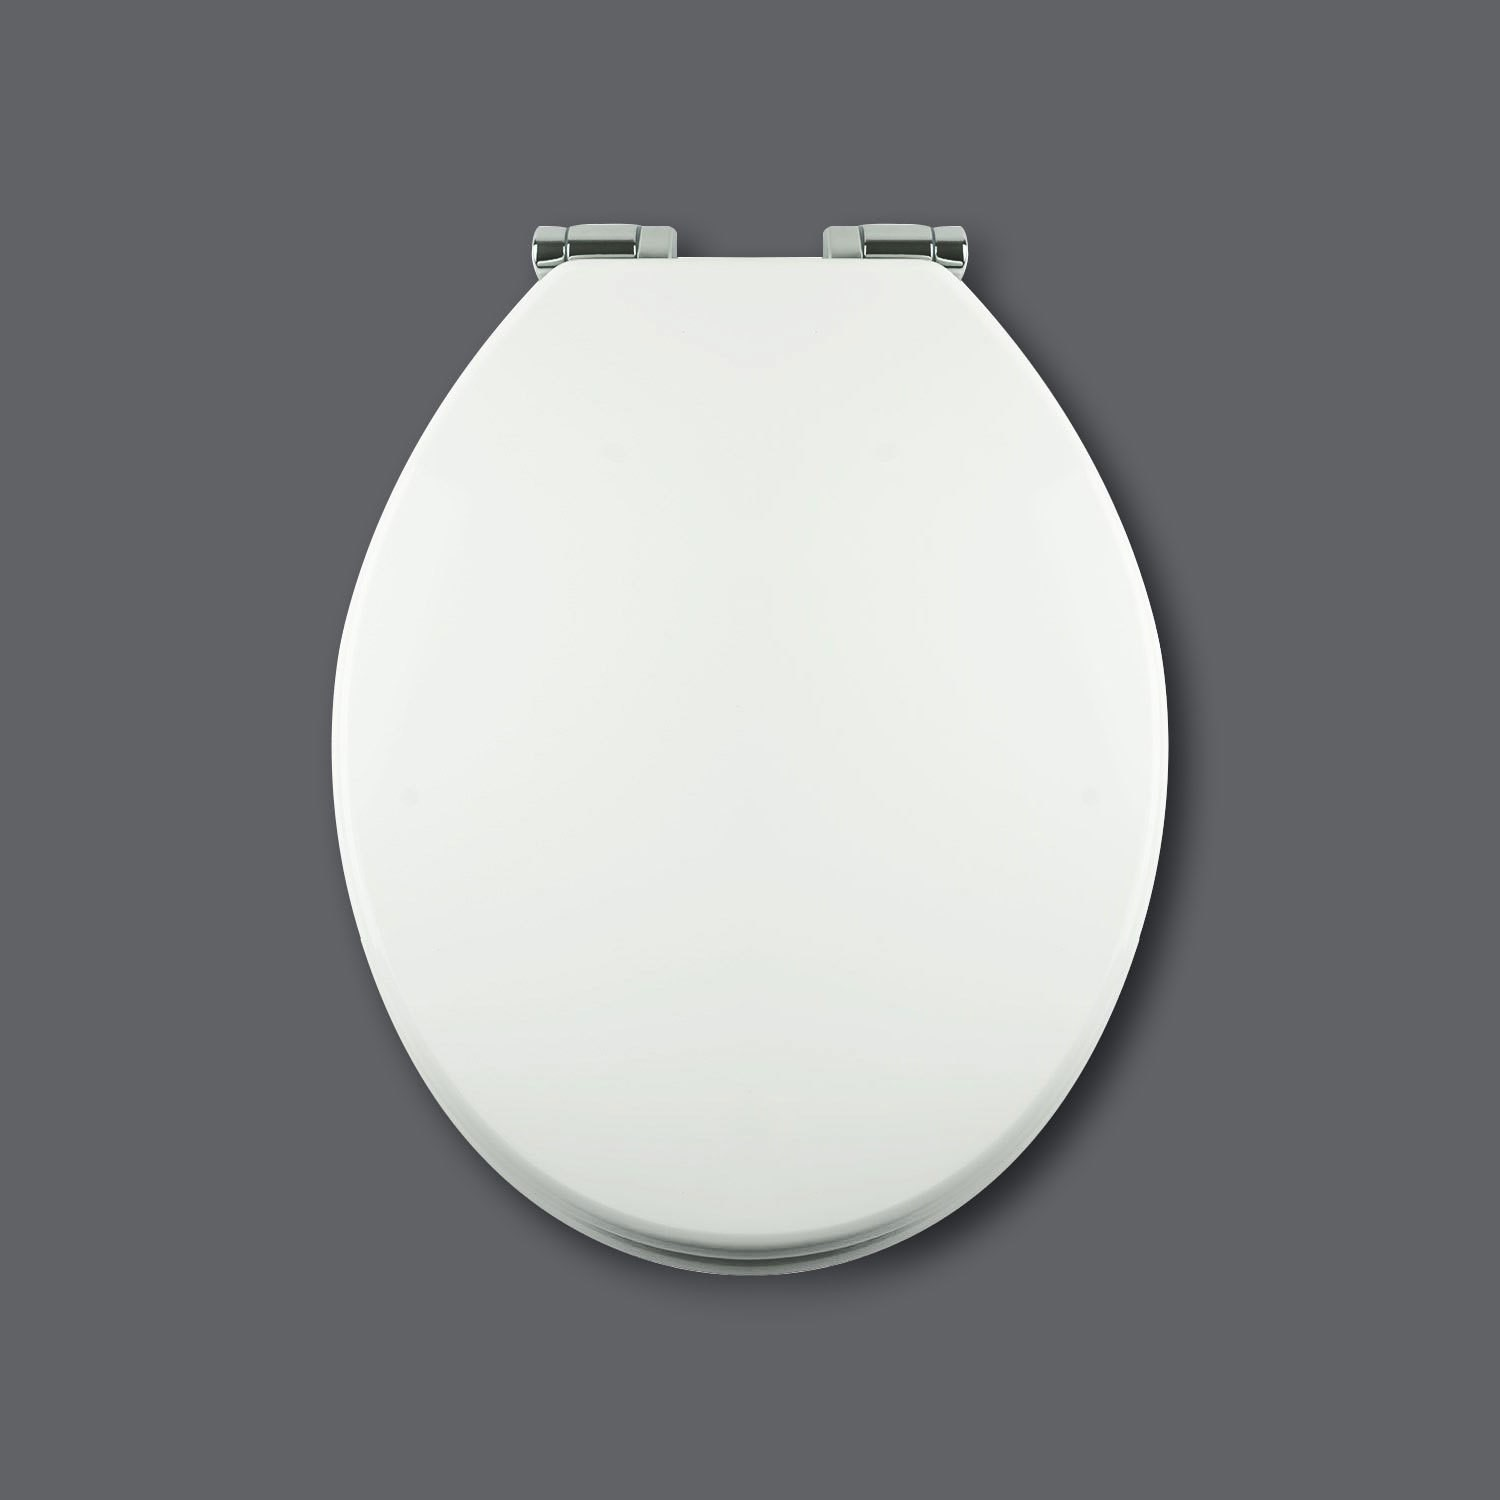 Soft Close Toilet Seat in White with Chrome Hinges